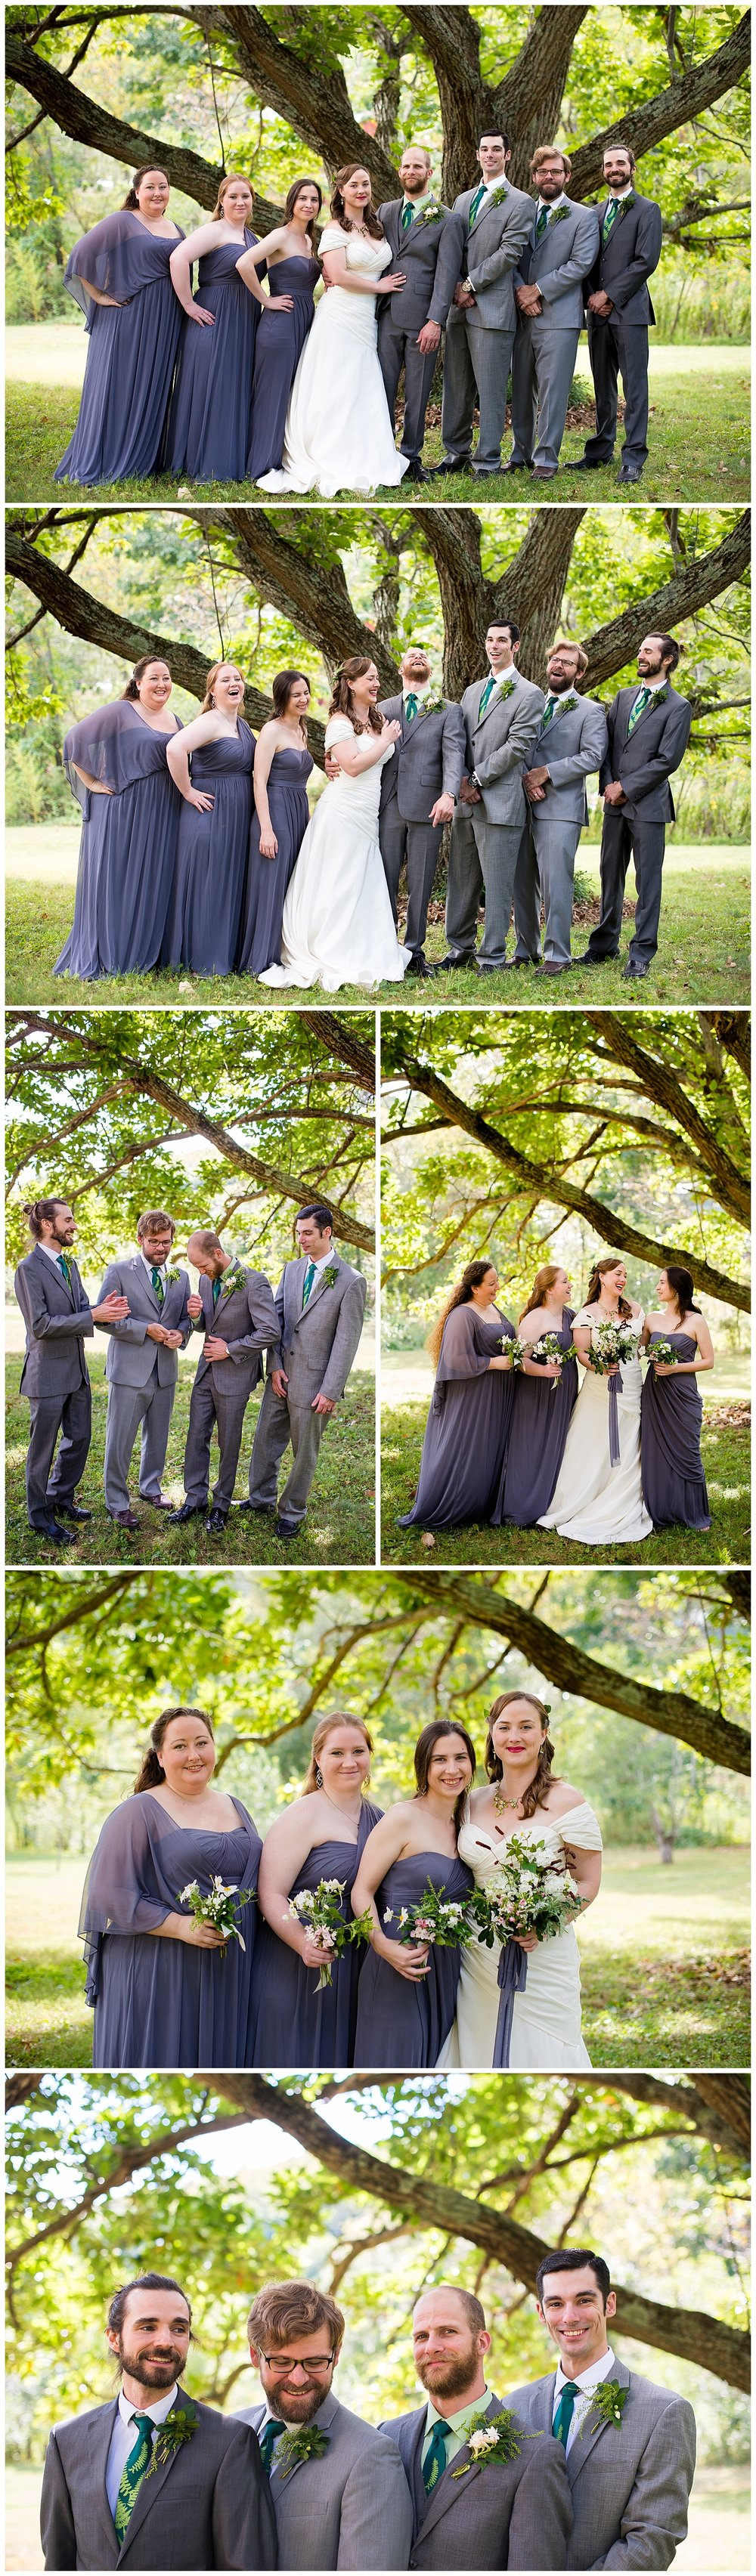 October-Earthy-Bohemian-Bridal-Party-Photos-Mismatched-Bridesmaids-Casual-Groomsmen-Bride-Groom